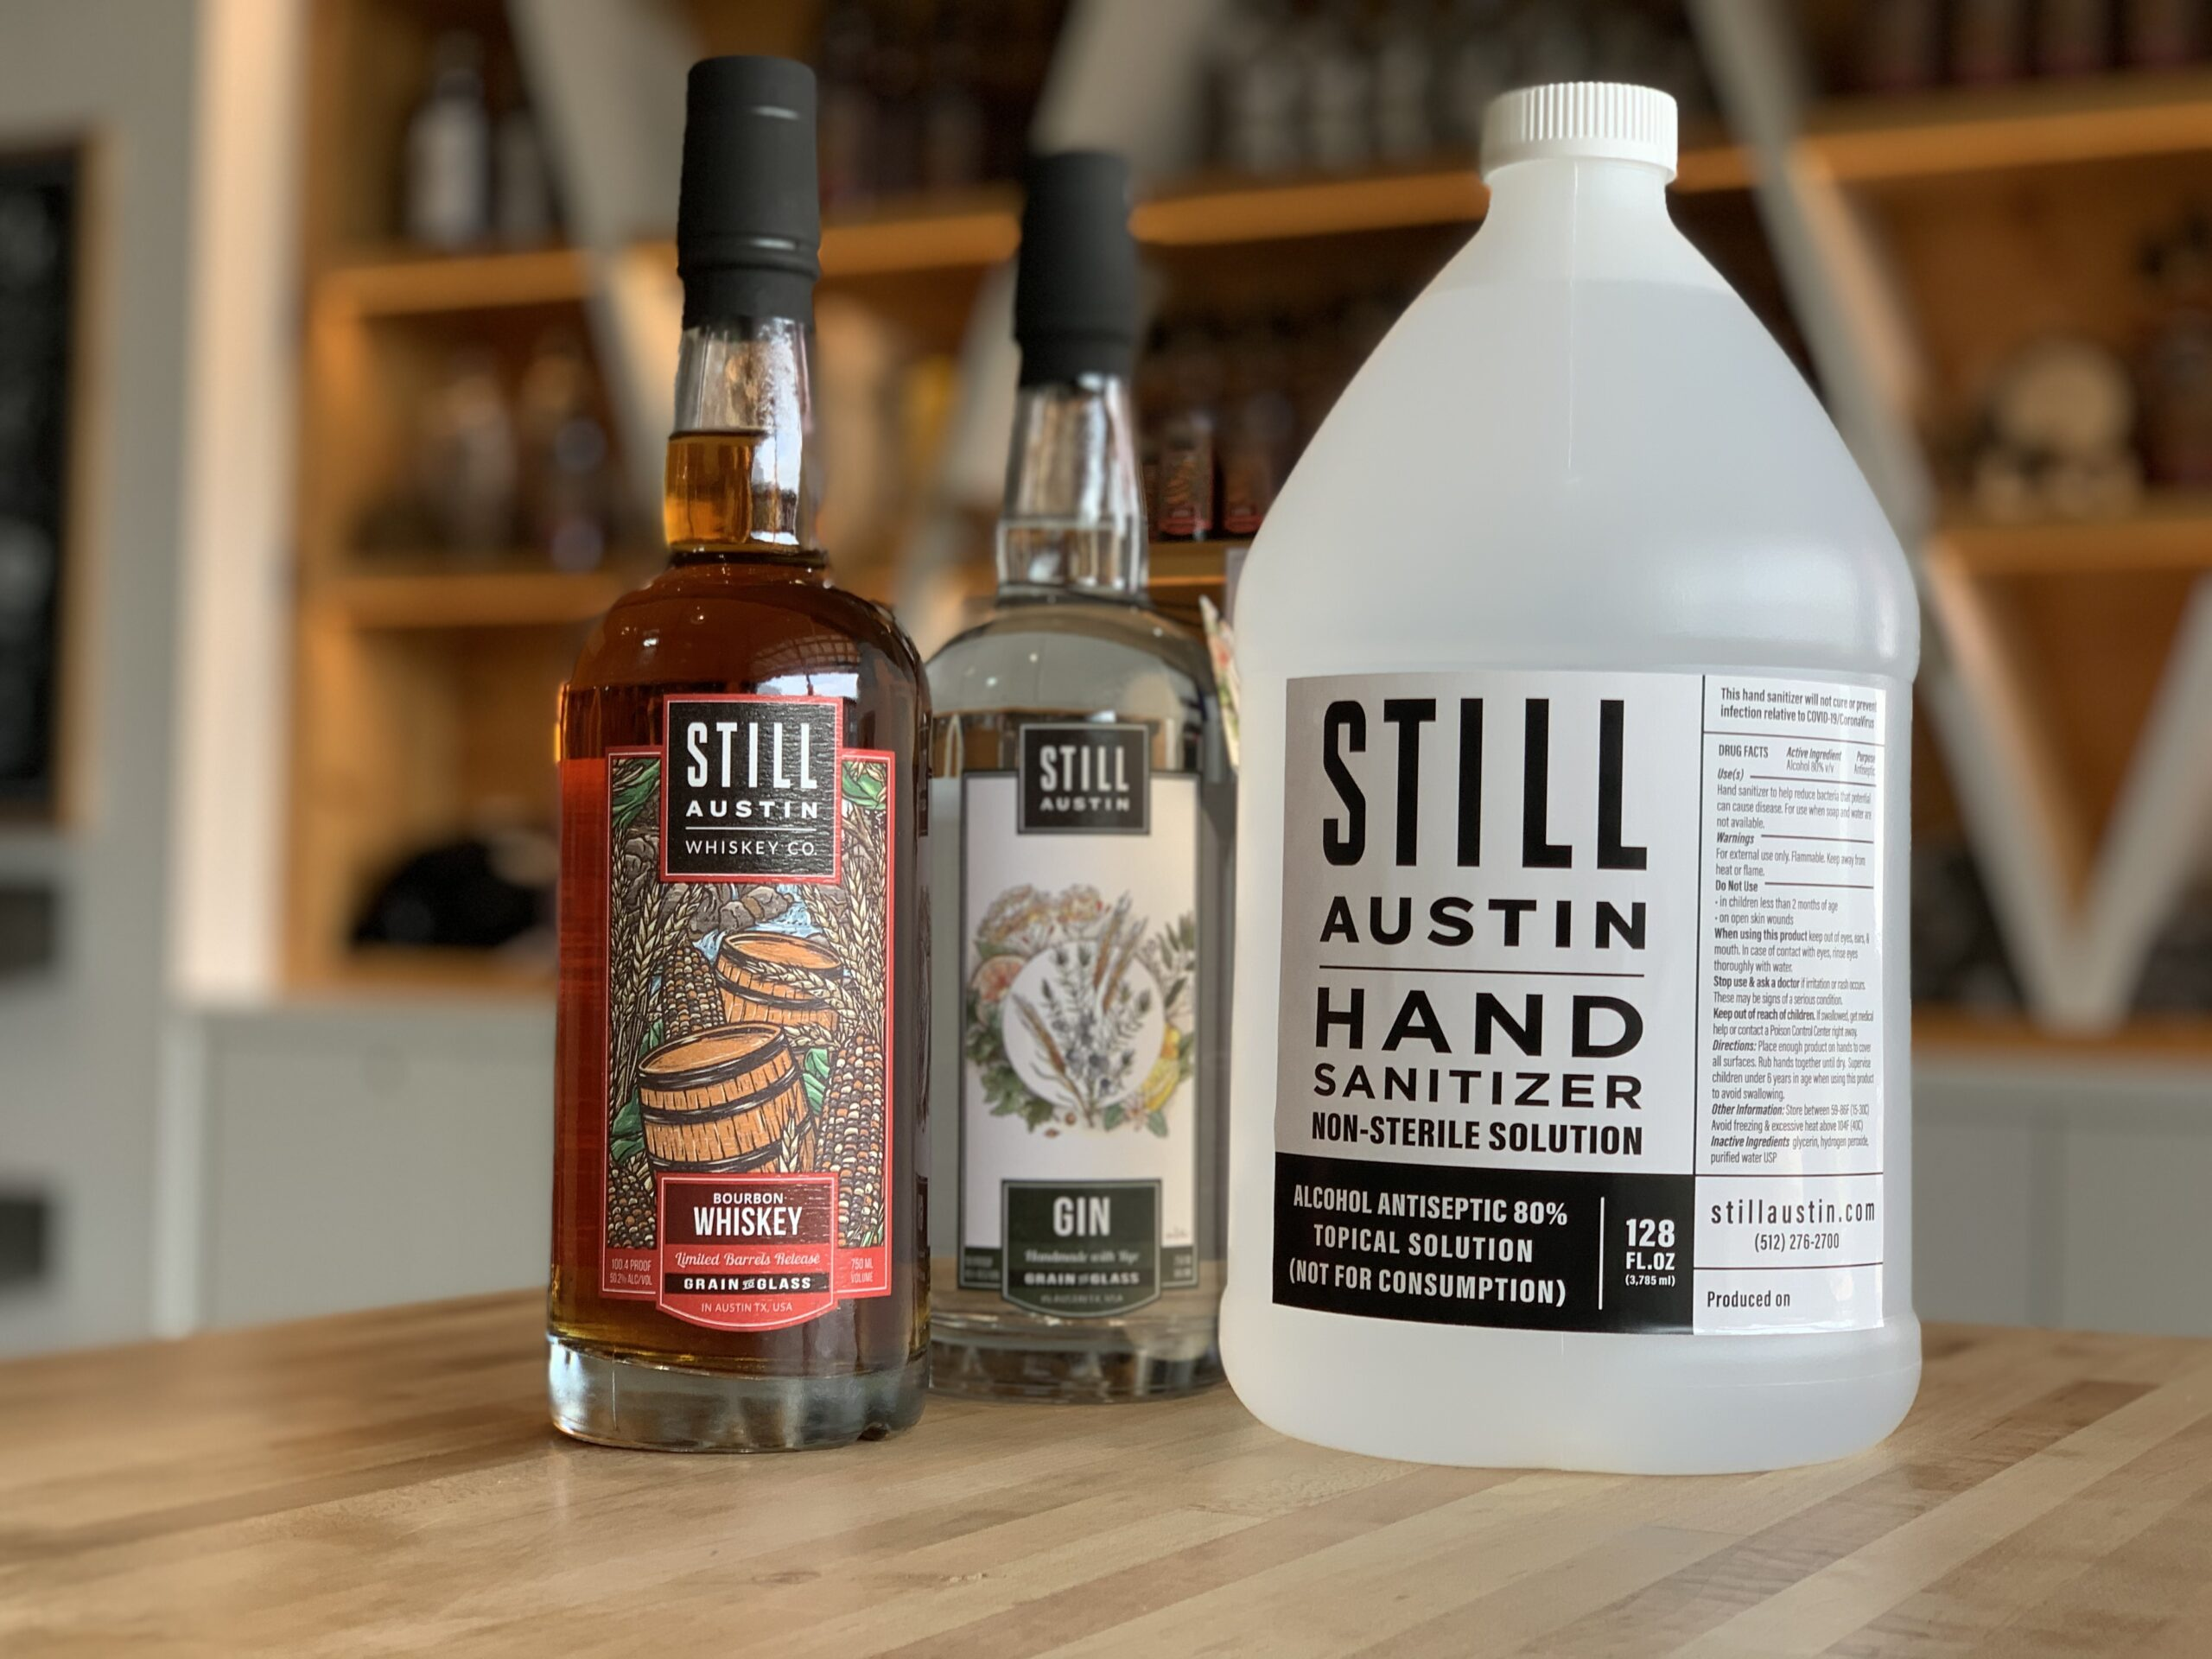 still austin whiskey makes hand sanitizer for coivid-19